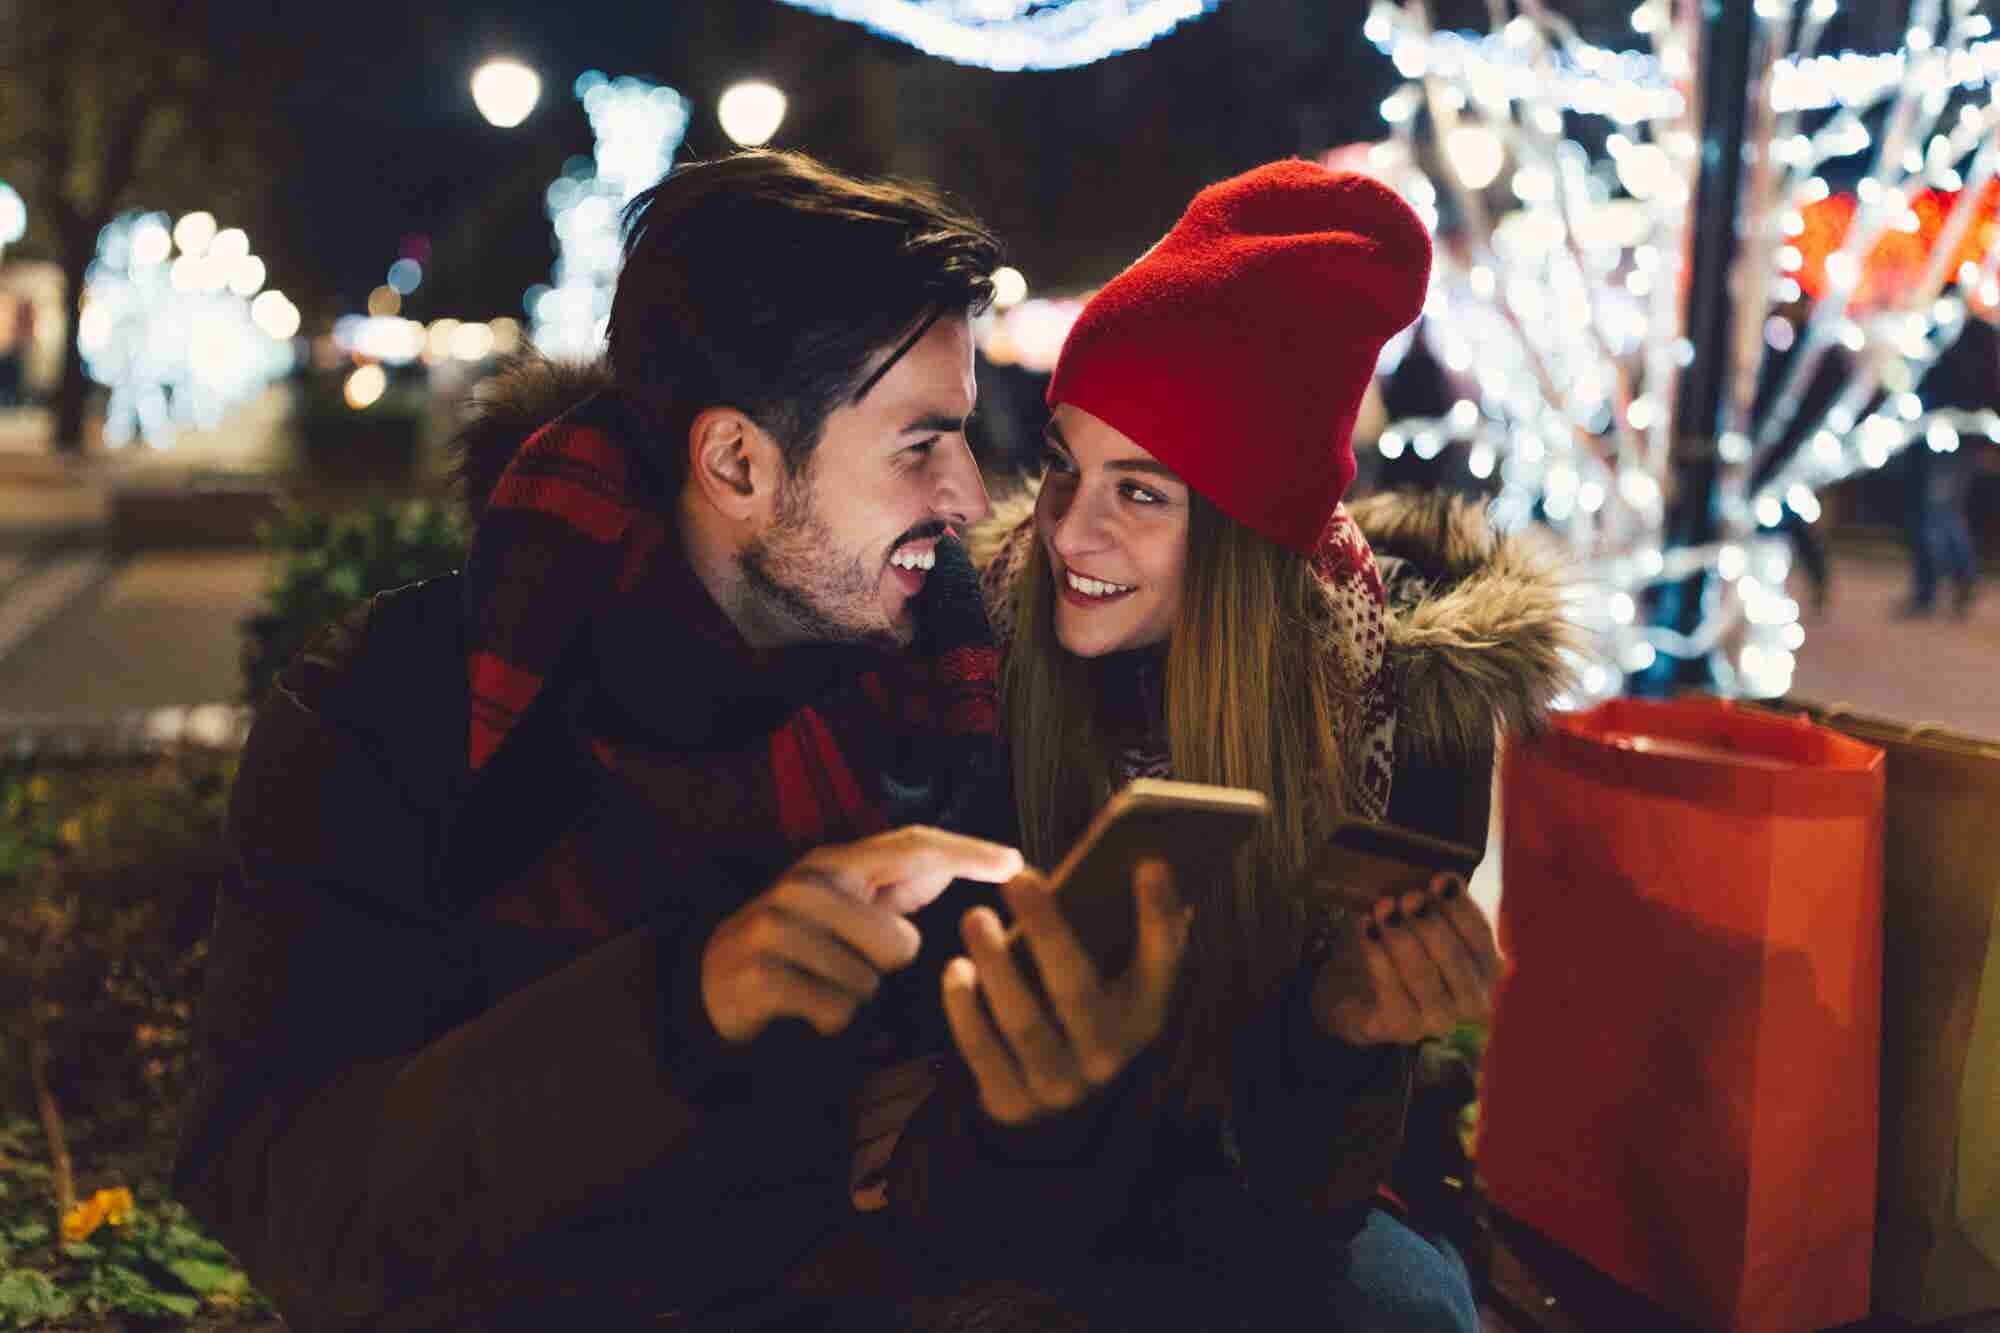 5 Online Shopping Trends to Watch This Holiday Season